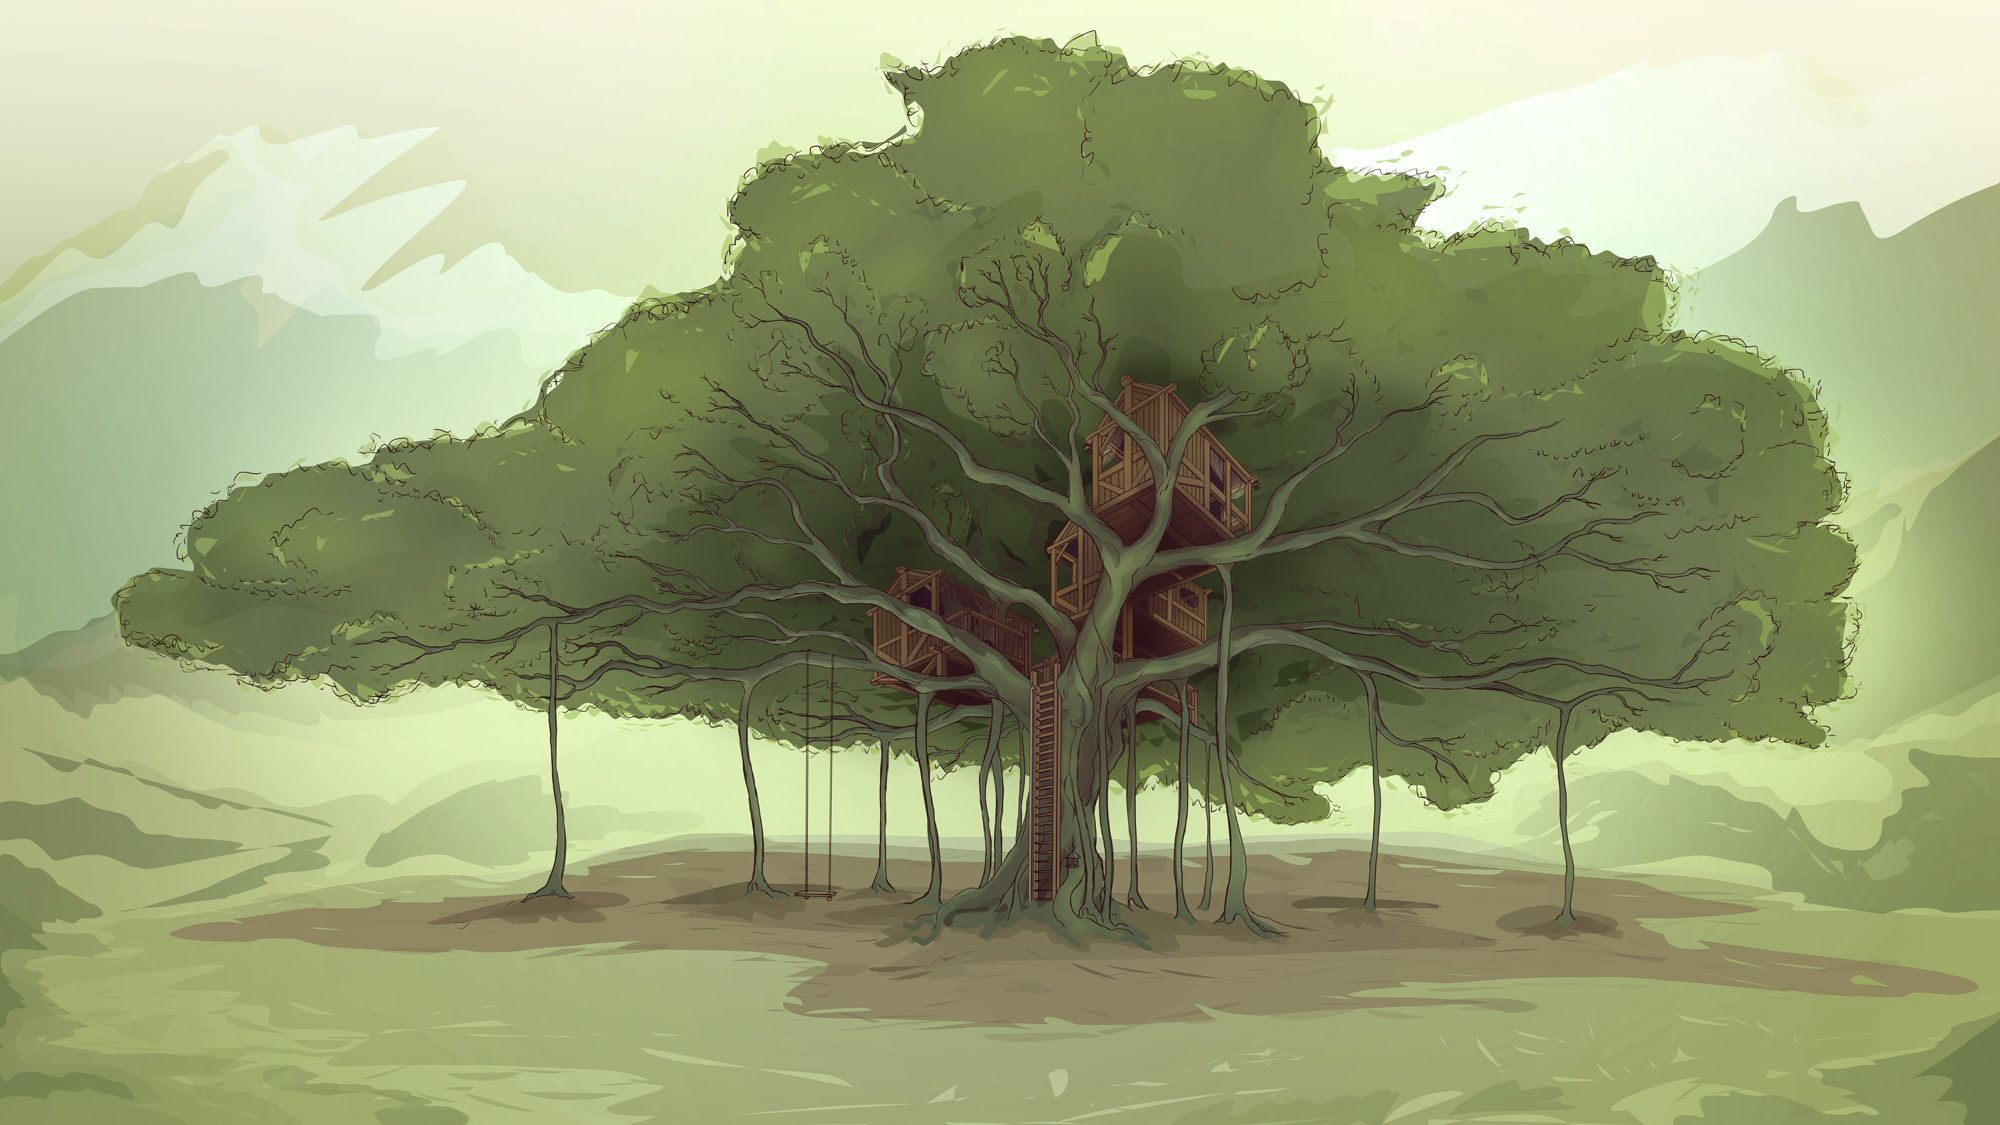 banyan tree illustration